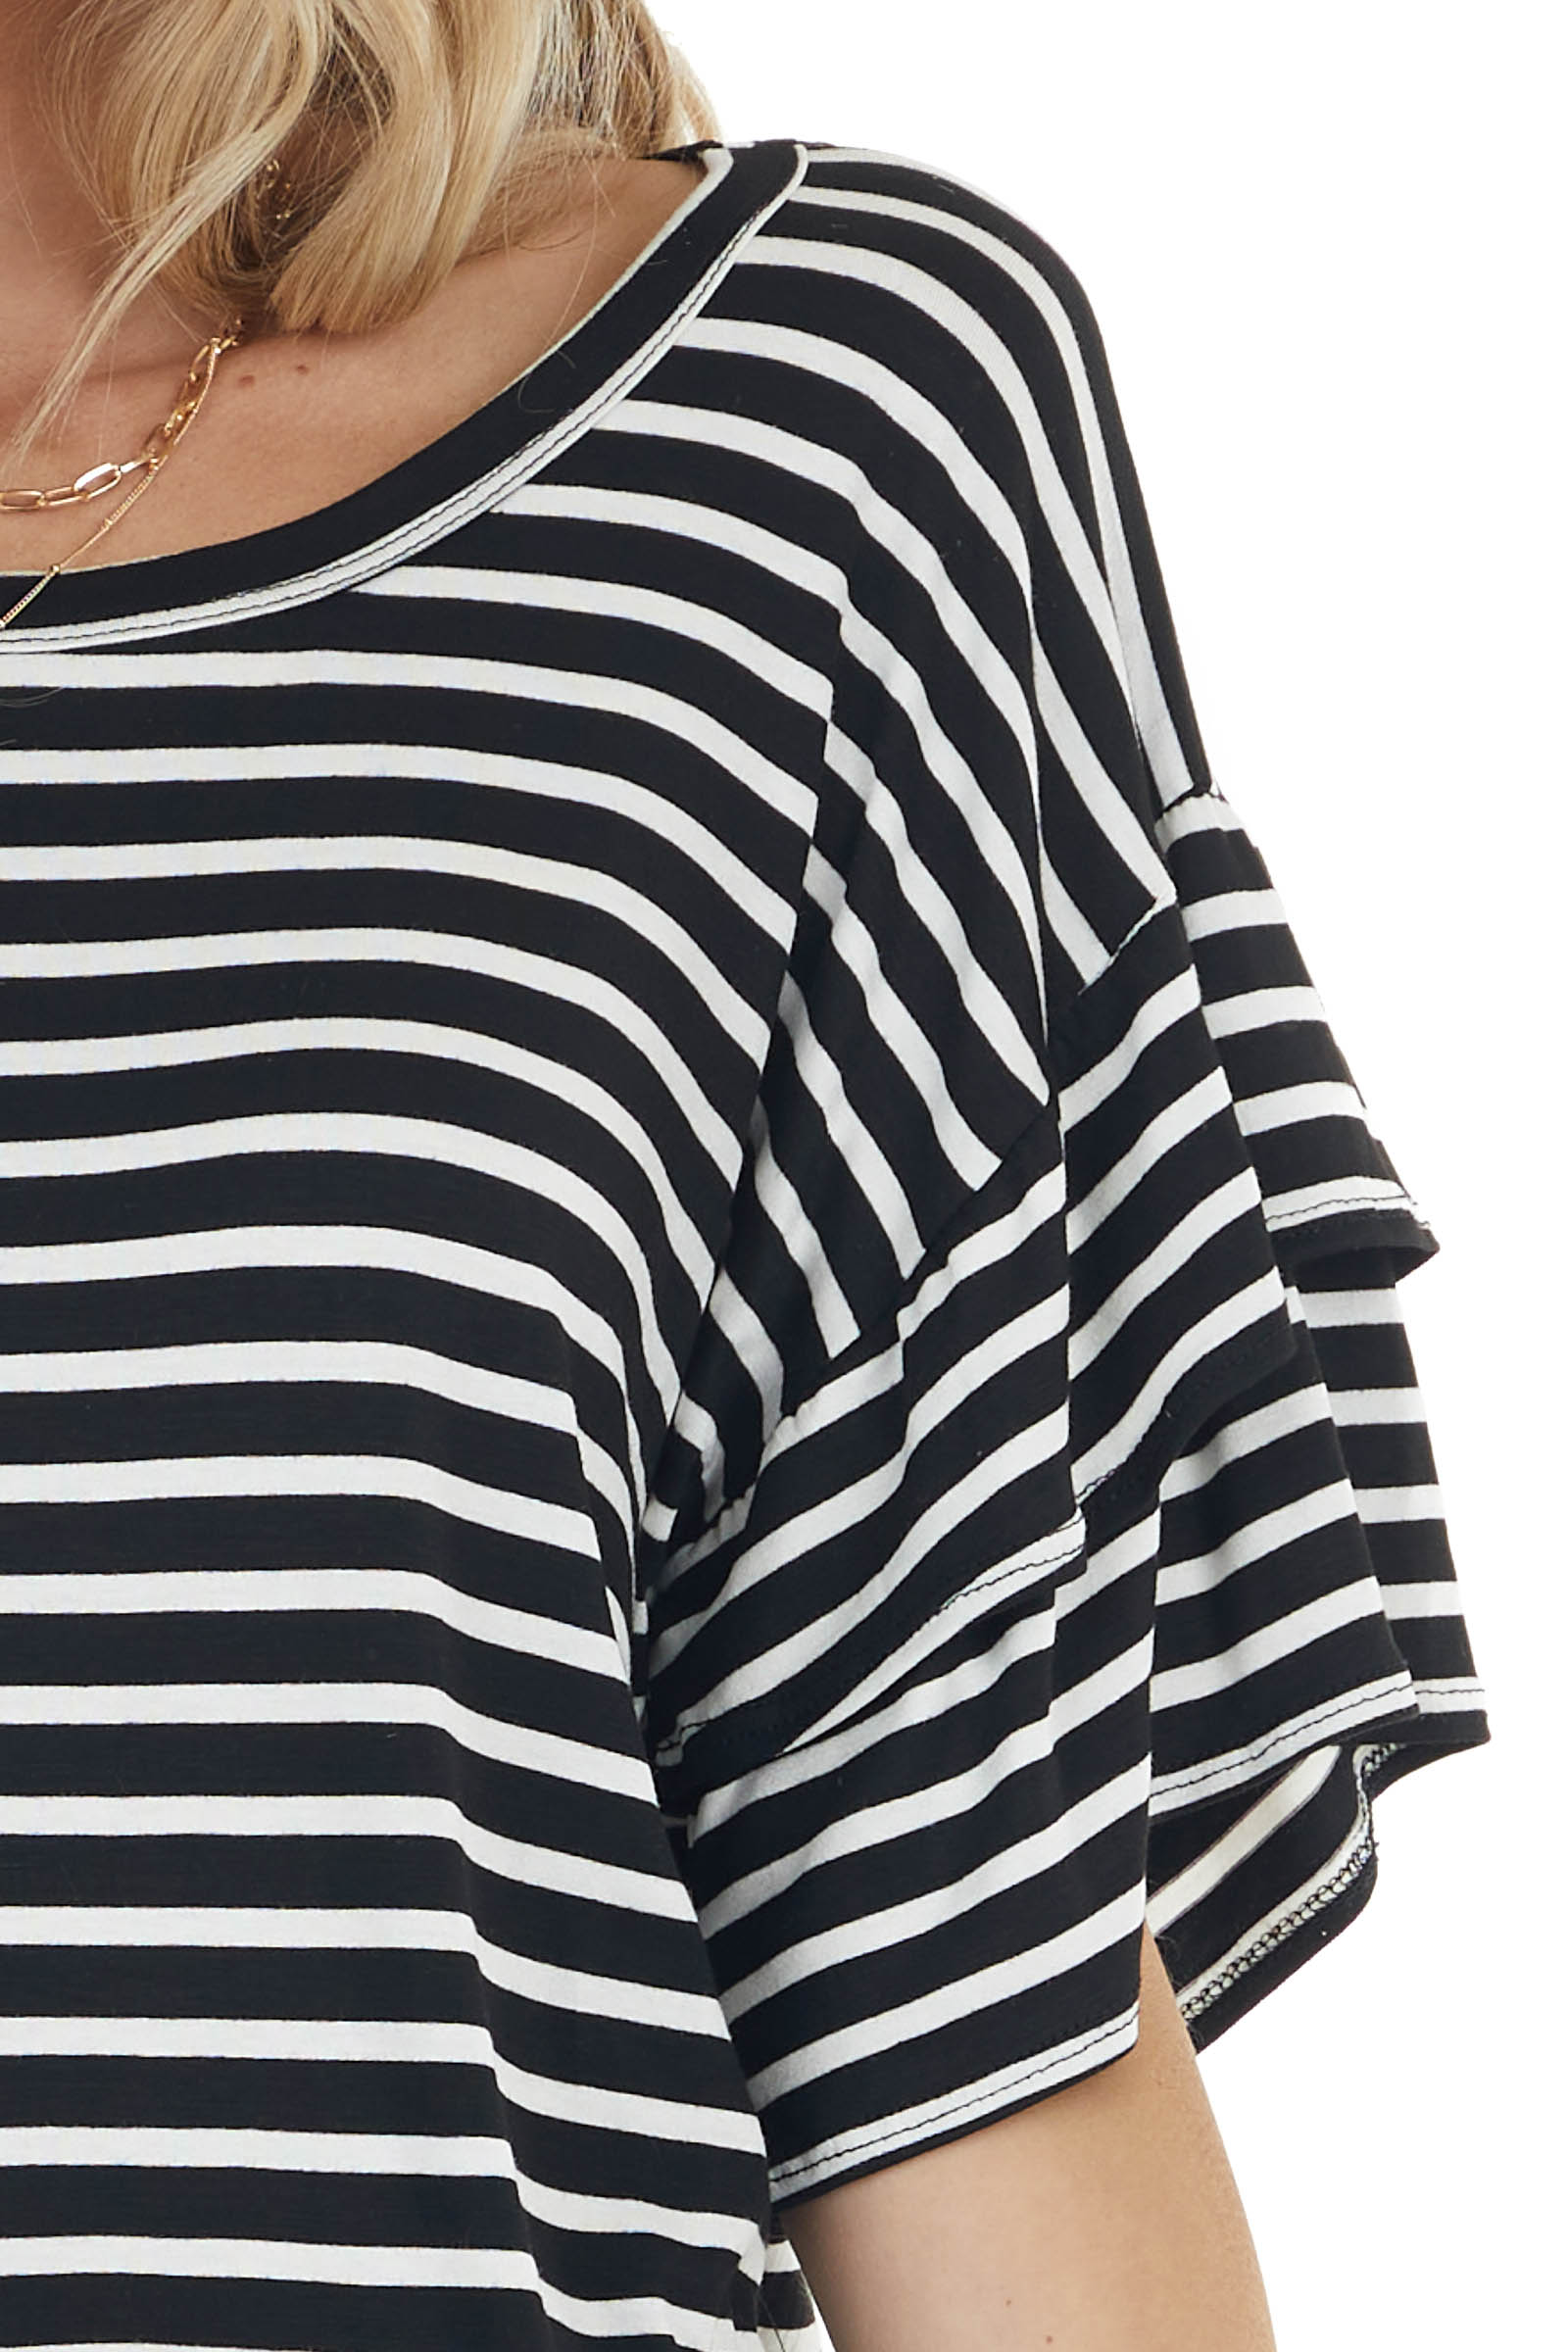 Black and Ivory Striped Knit Top with Short Ruffle Sleeves